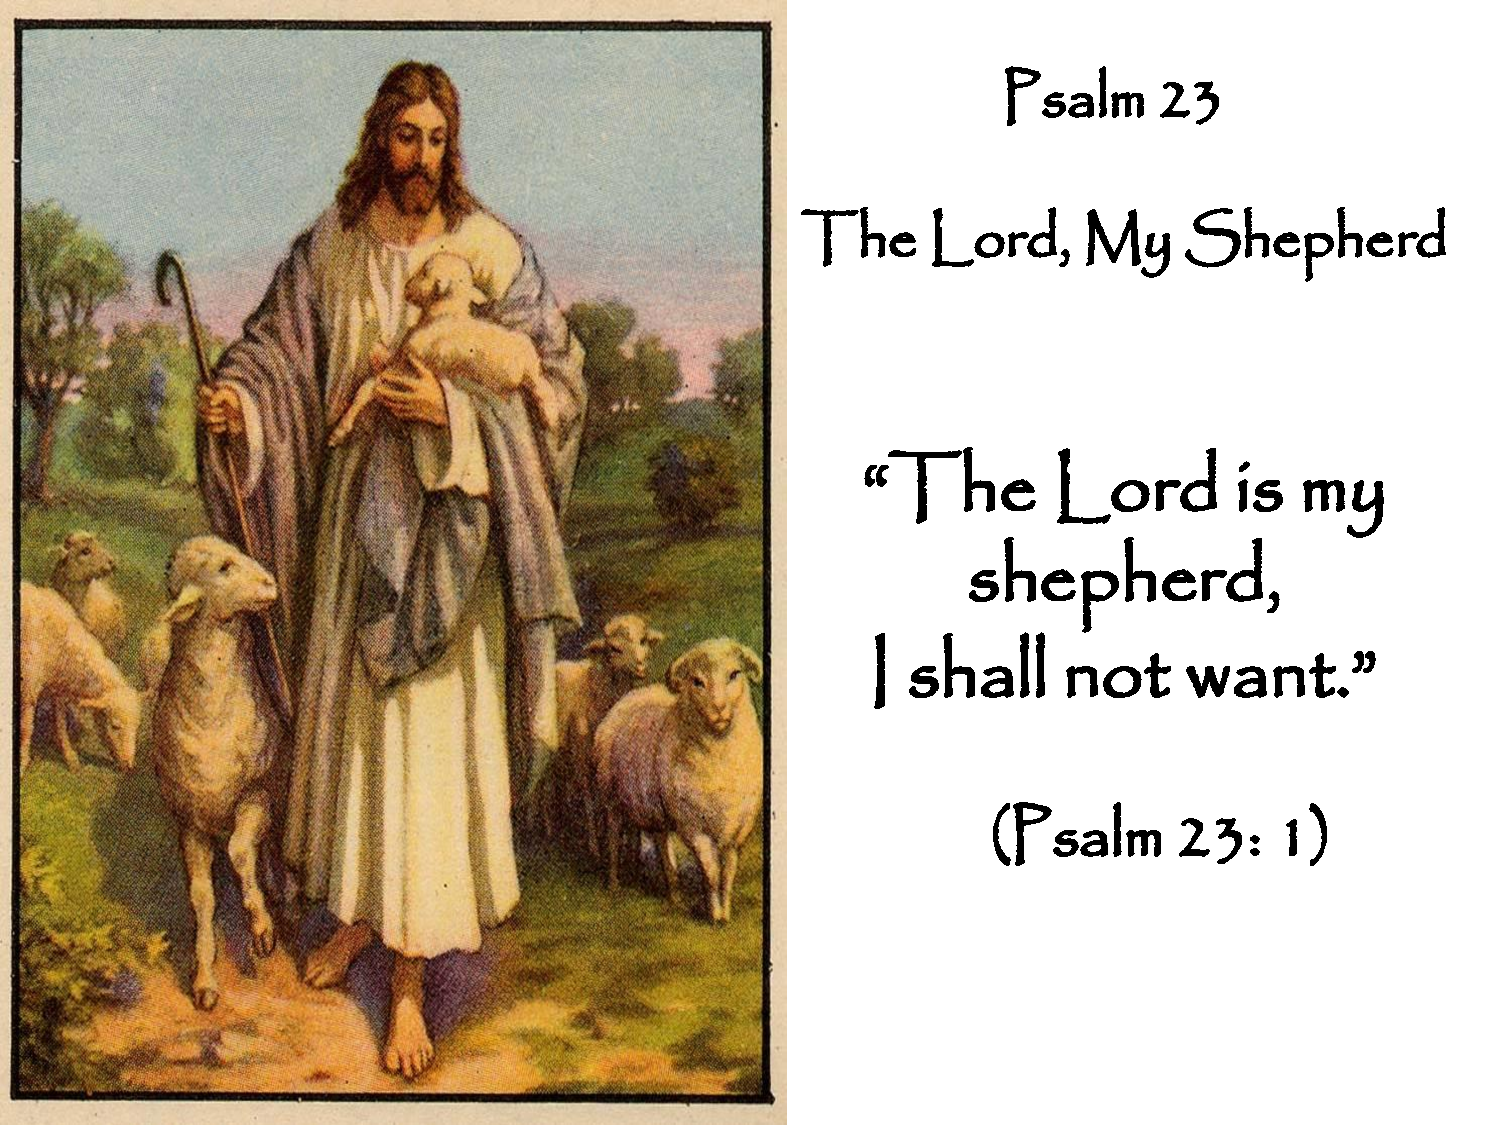 The Lord Is My Shepherd Psalm 23 Psalm 23 The Lord My Shepherd Psalm 23 Lord Is My Shepherd Psalms